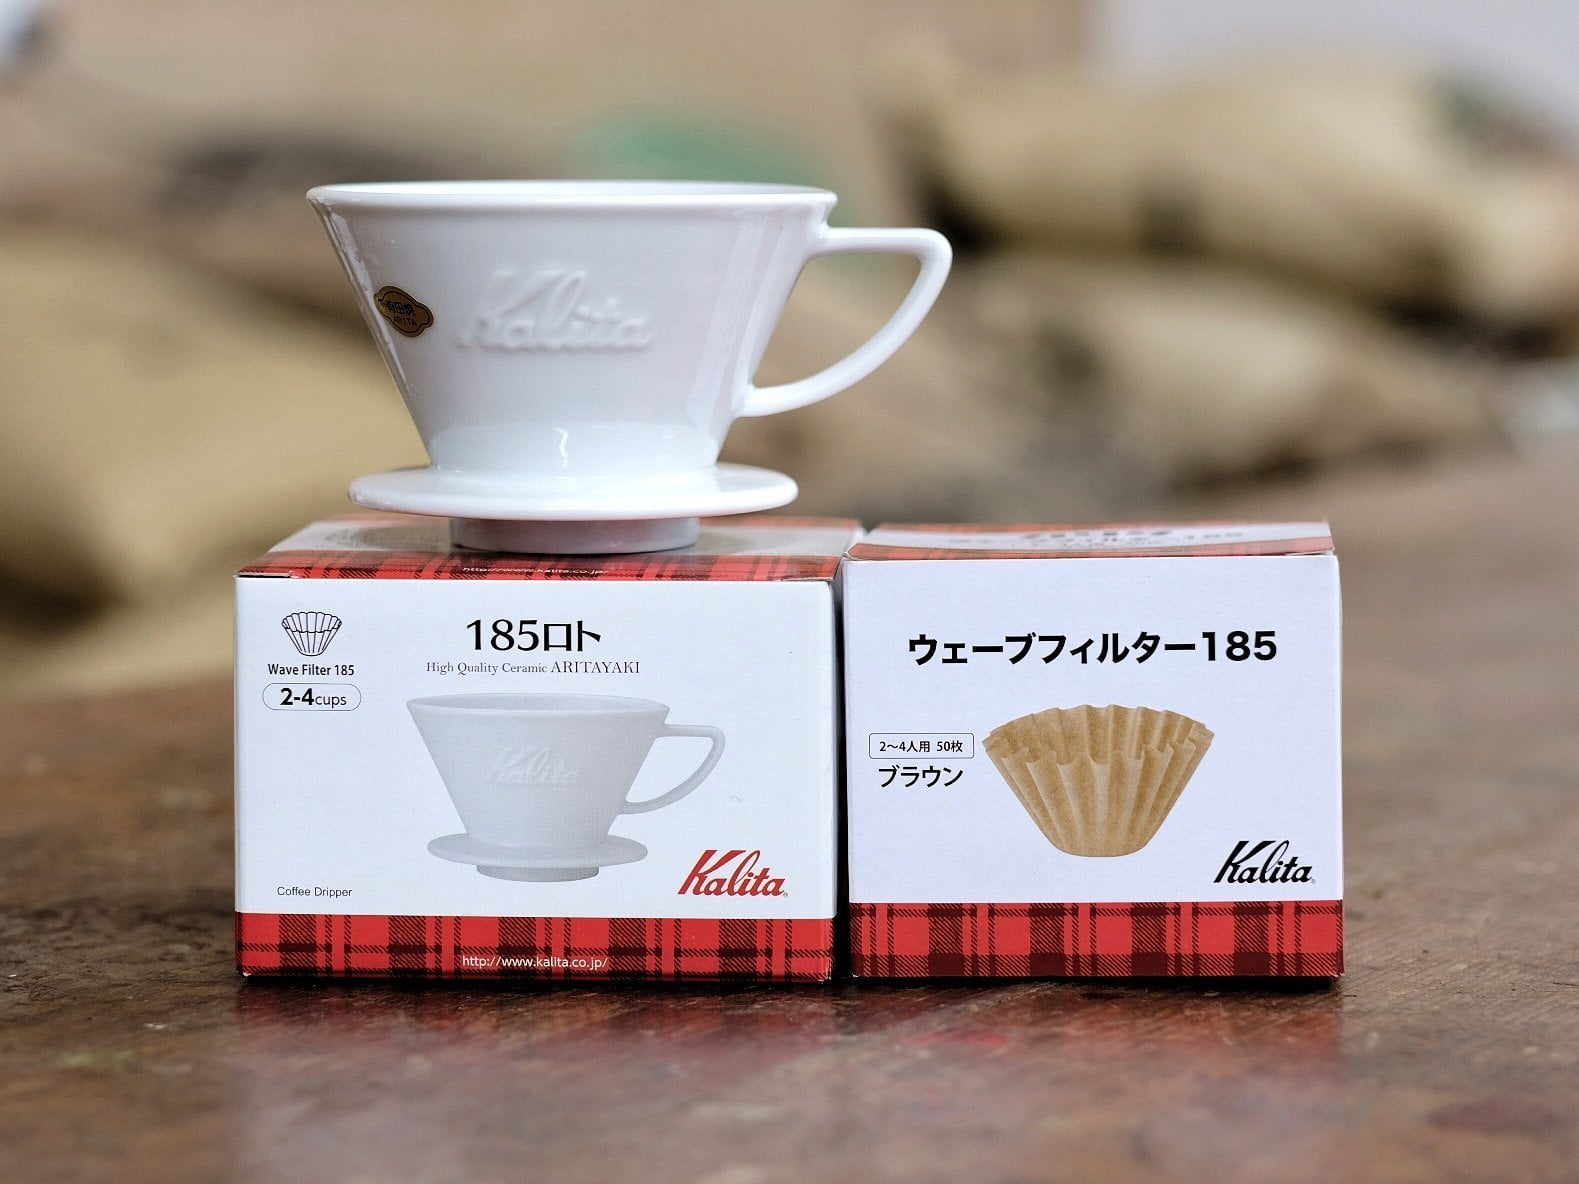 Kalita Wave 185 Ceramic - Free UK Delivery - Horsham Coffee Roaster